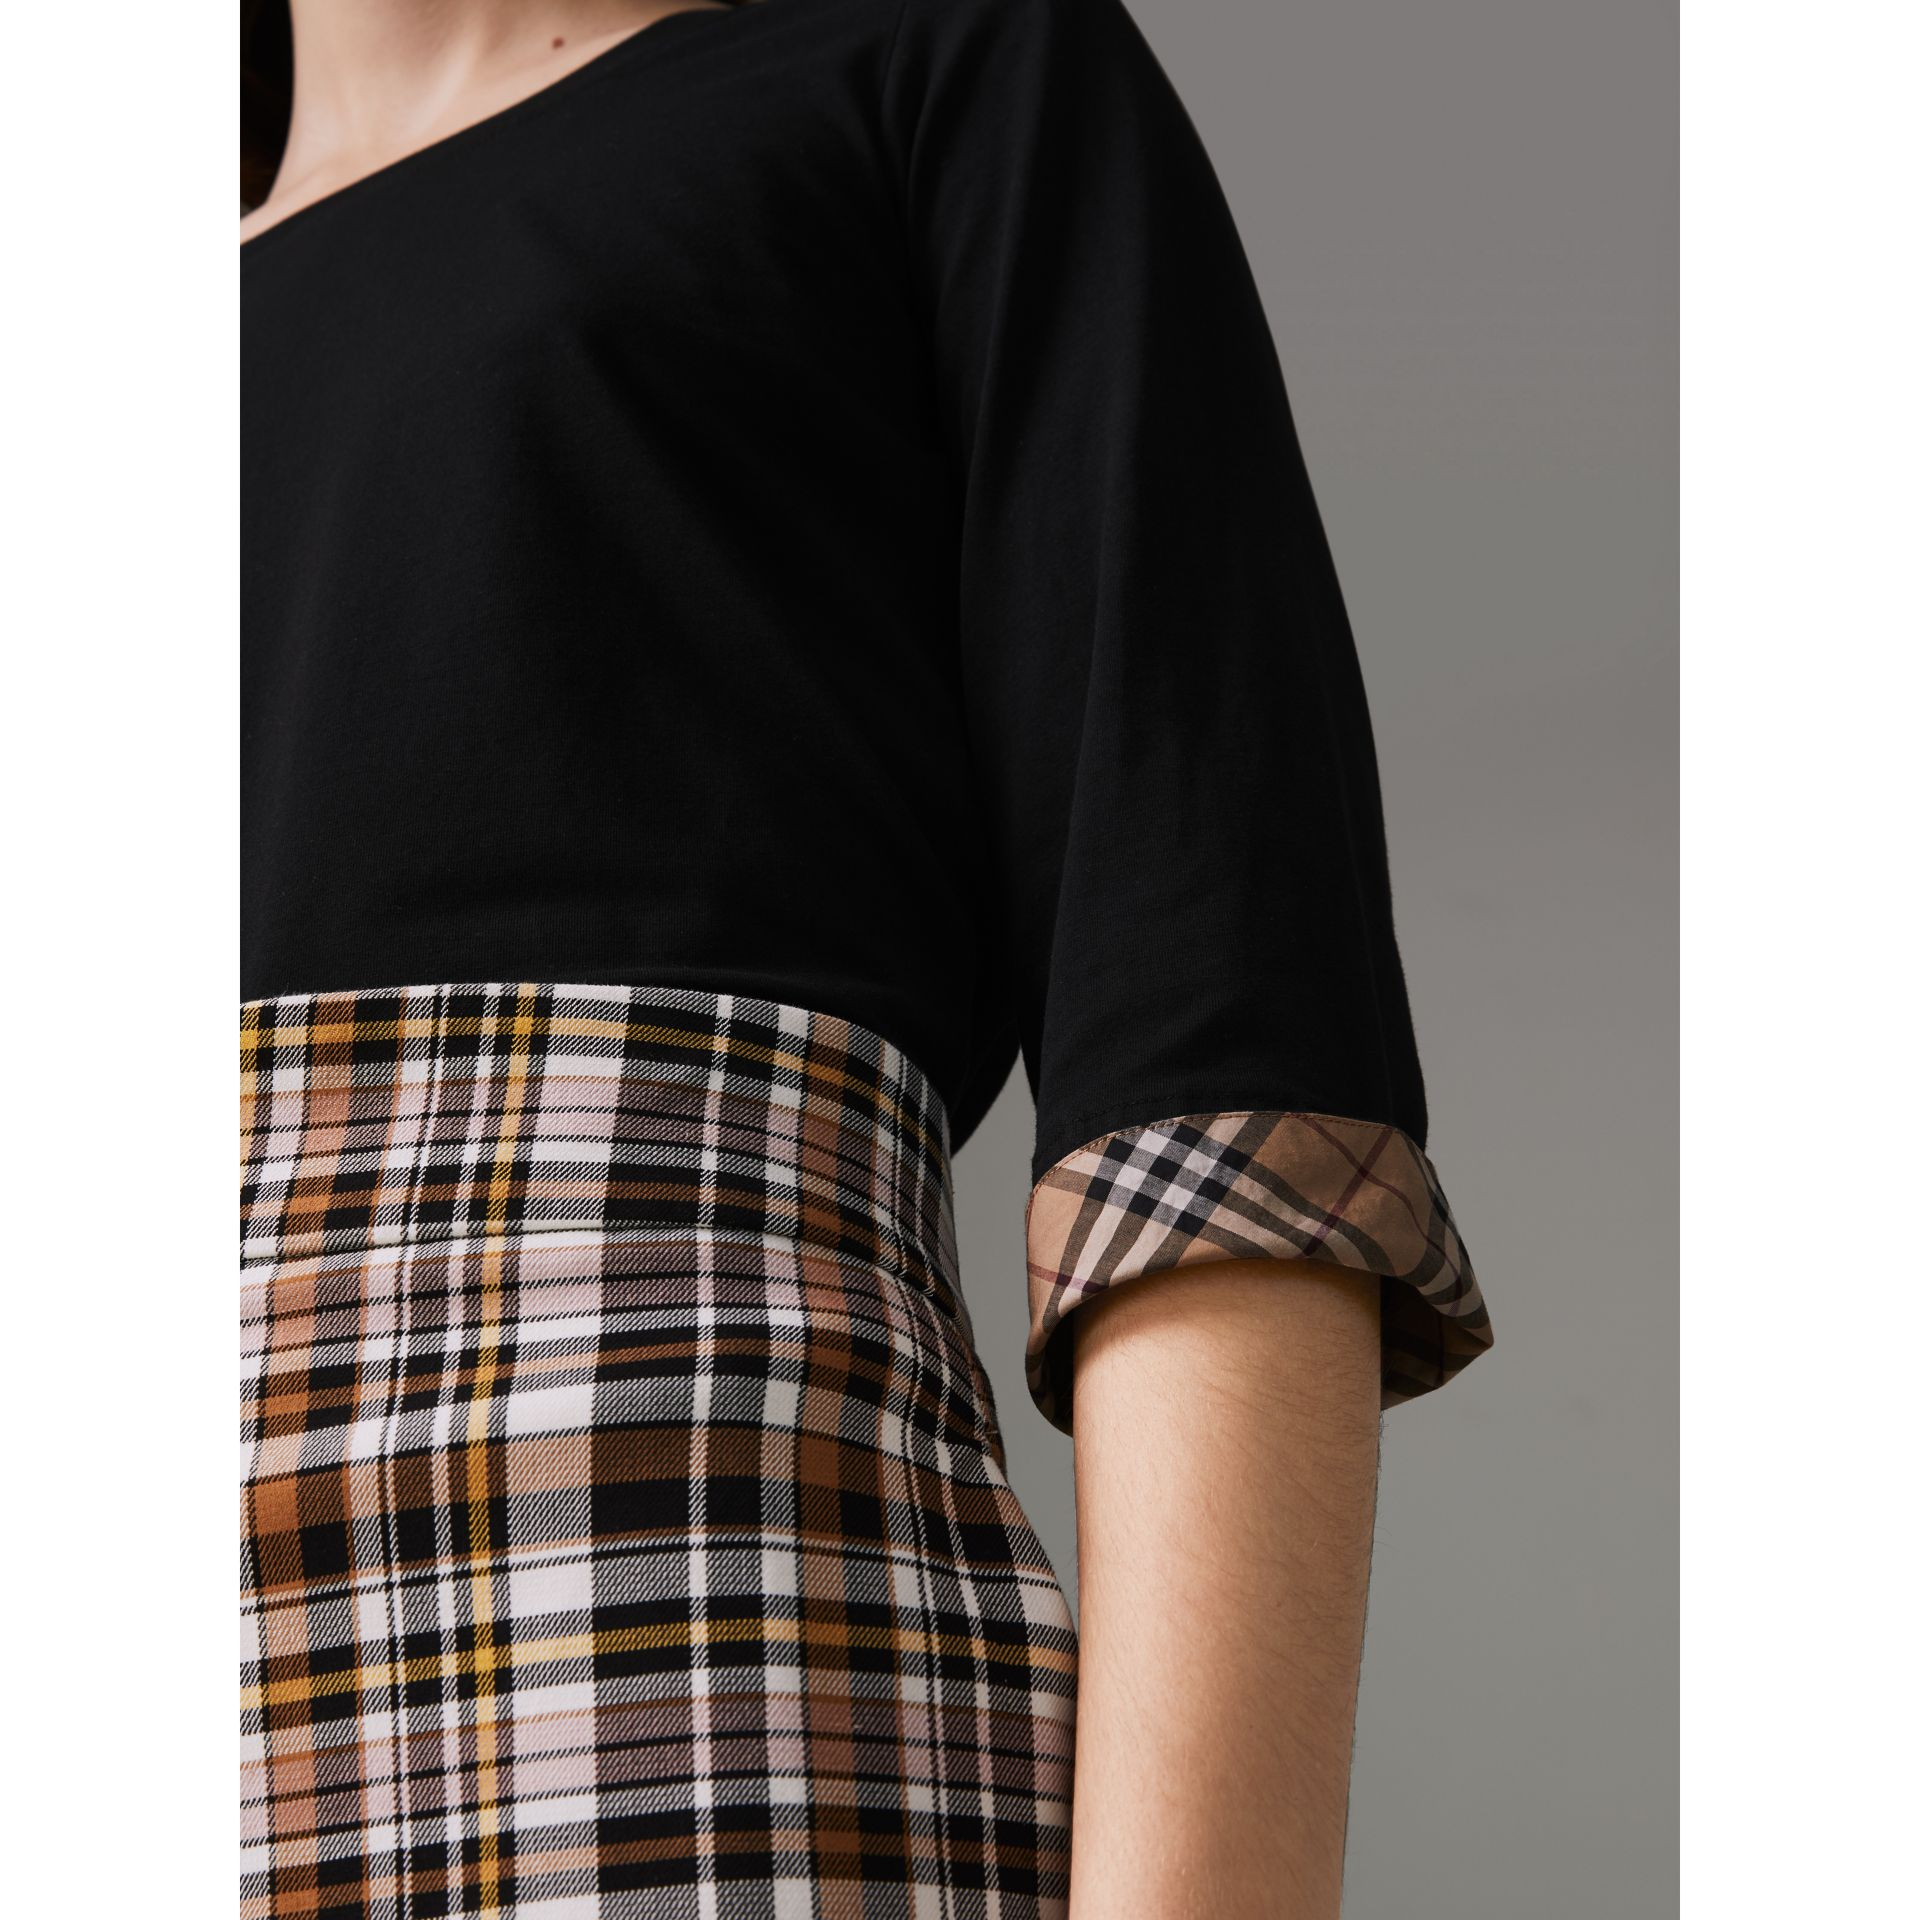 Check Detail Stretch Cotton Top in Black - Women | Burberry - gallery image 1